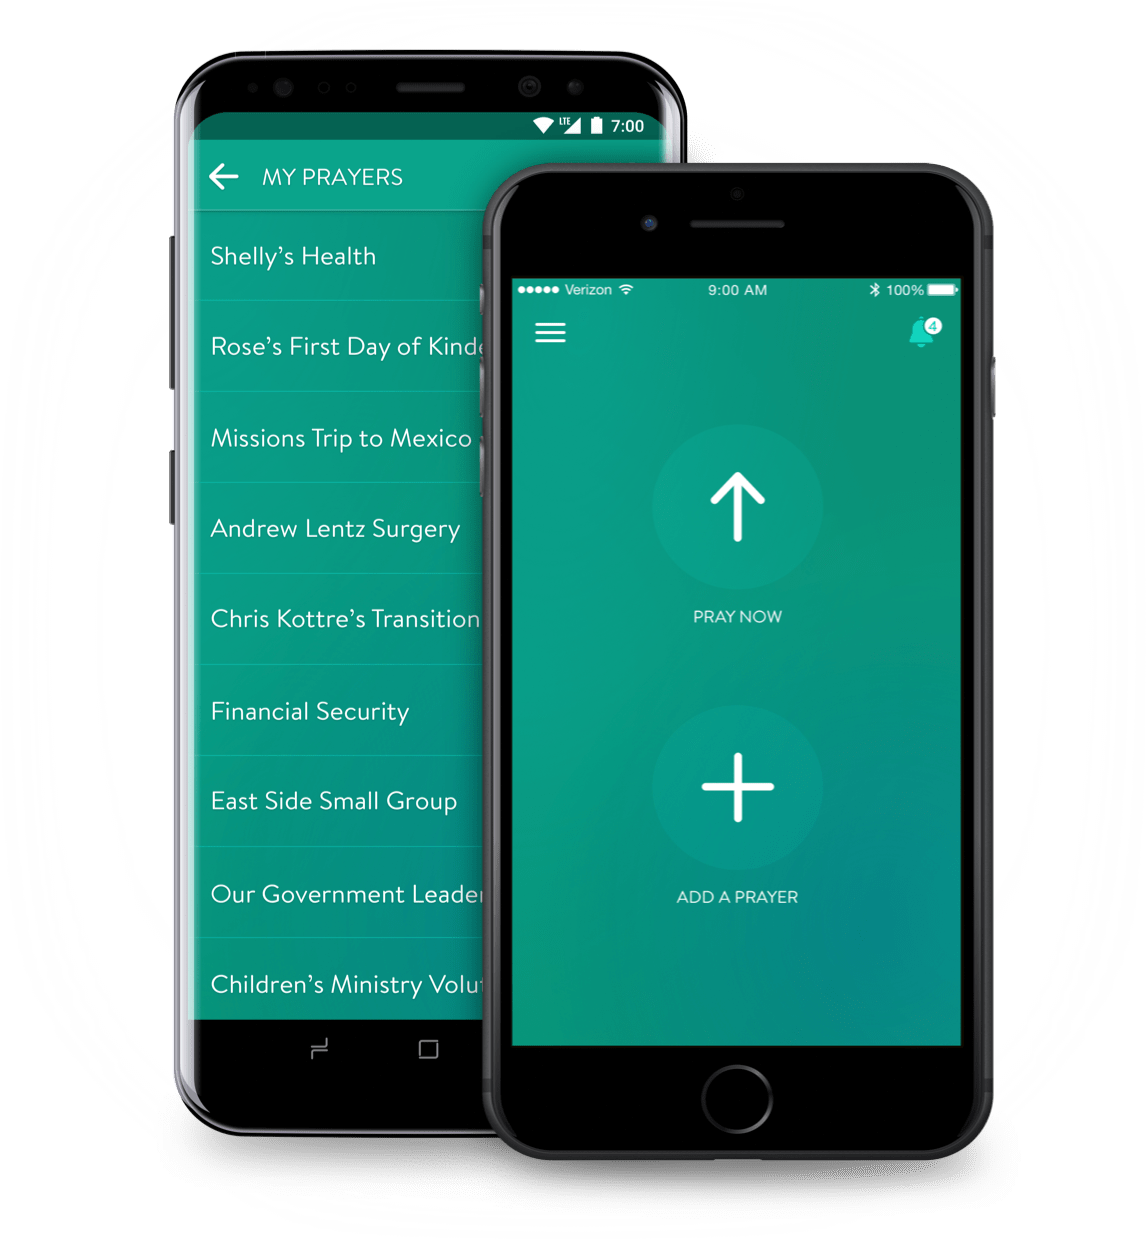 Echo Prayer App Remember To Pray And Ask Others To Pray